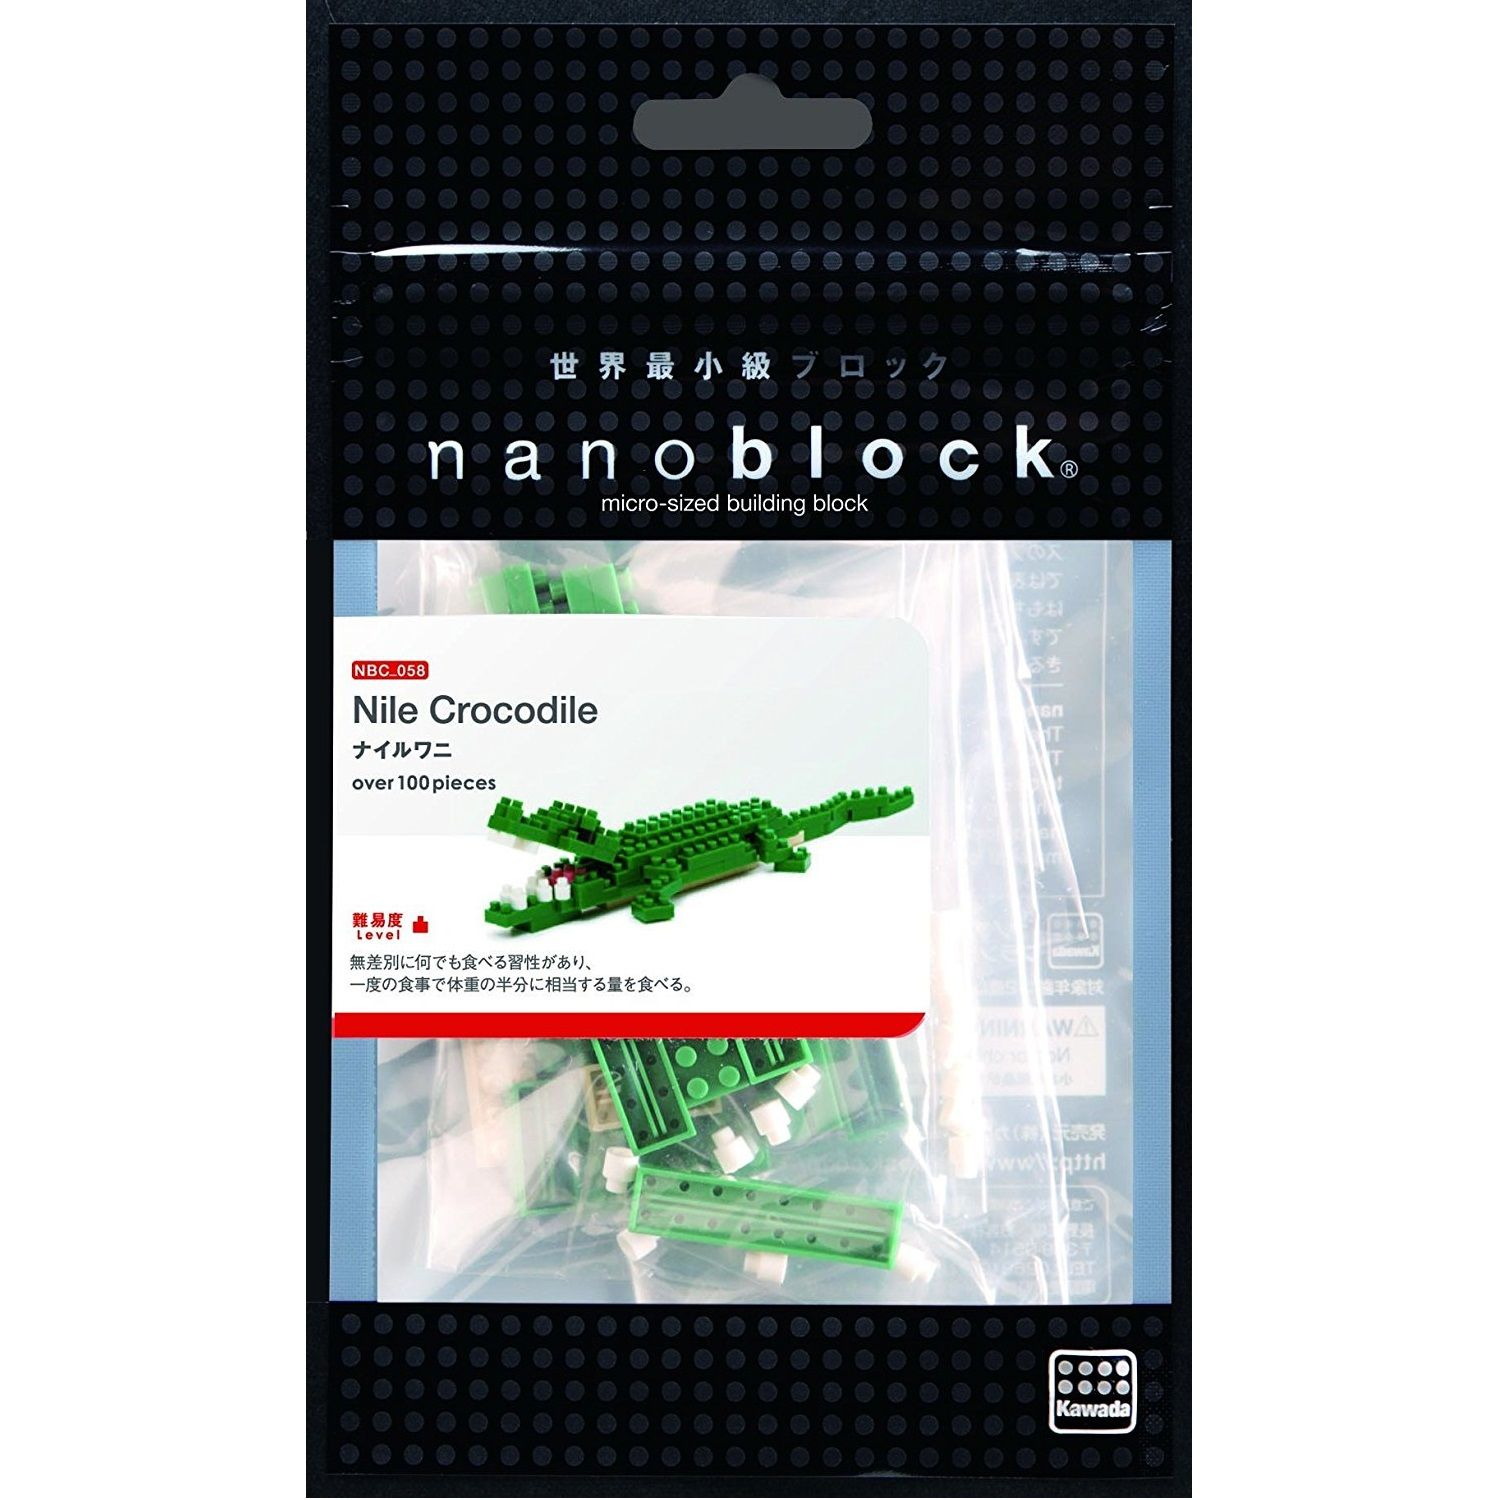 Crocodile Mini (Nanoblock) Building Set by Nanoblock (NBC058) by nanoblock